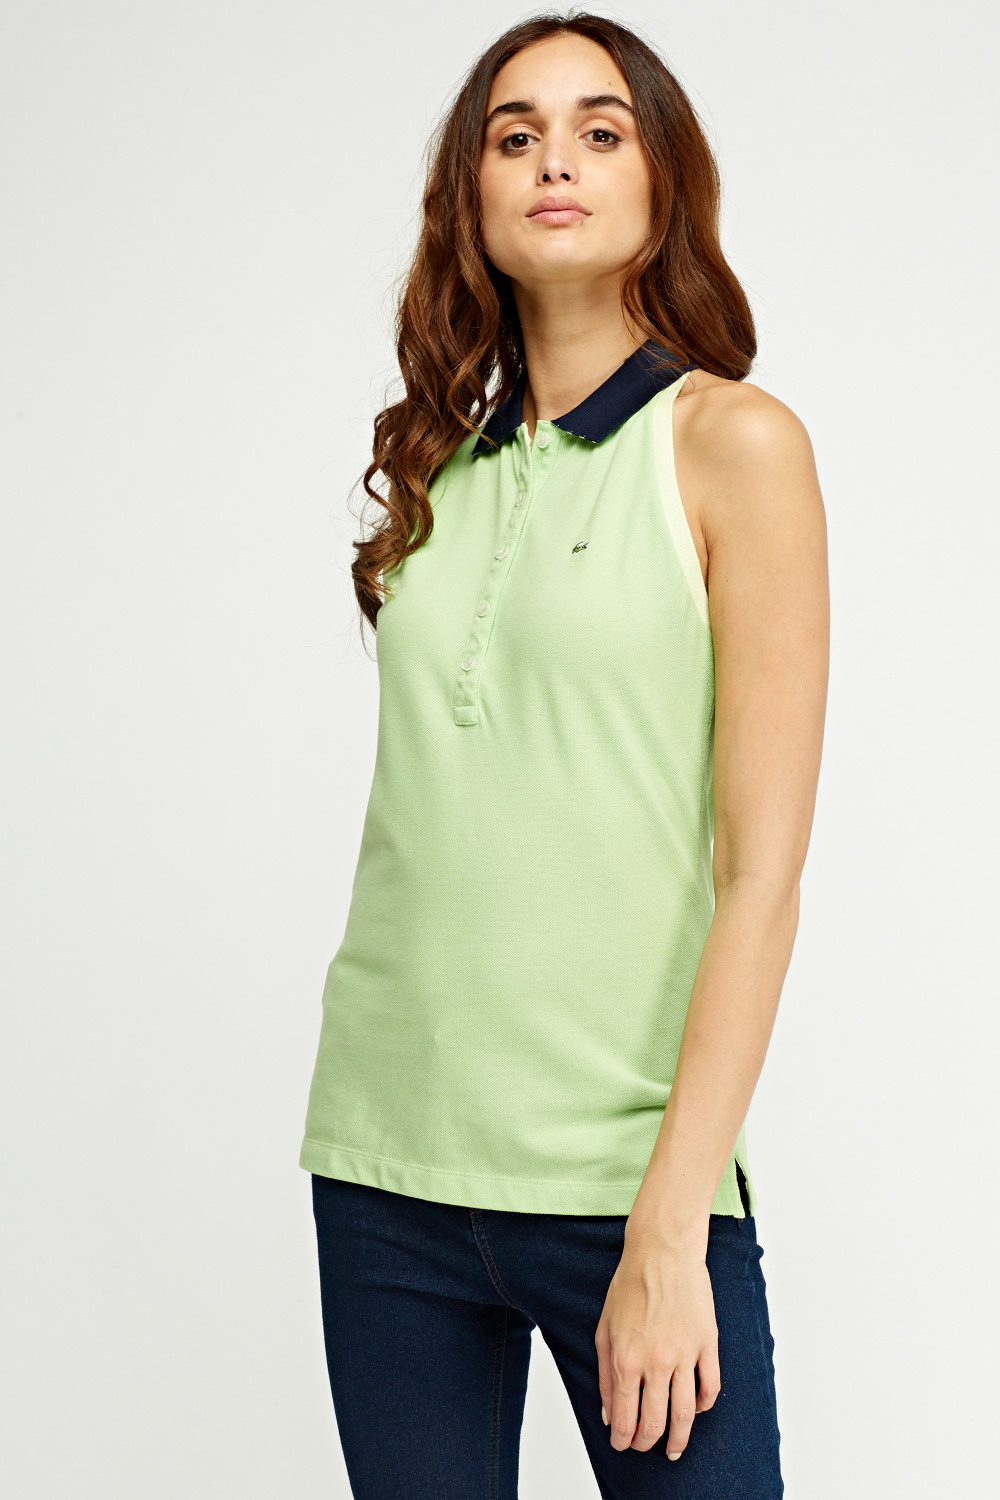 d9c7639bd5ac7c Lacoste Sleeveless Polo - Limited edition